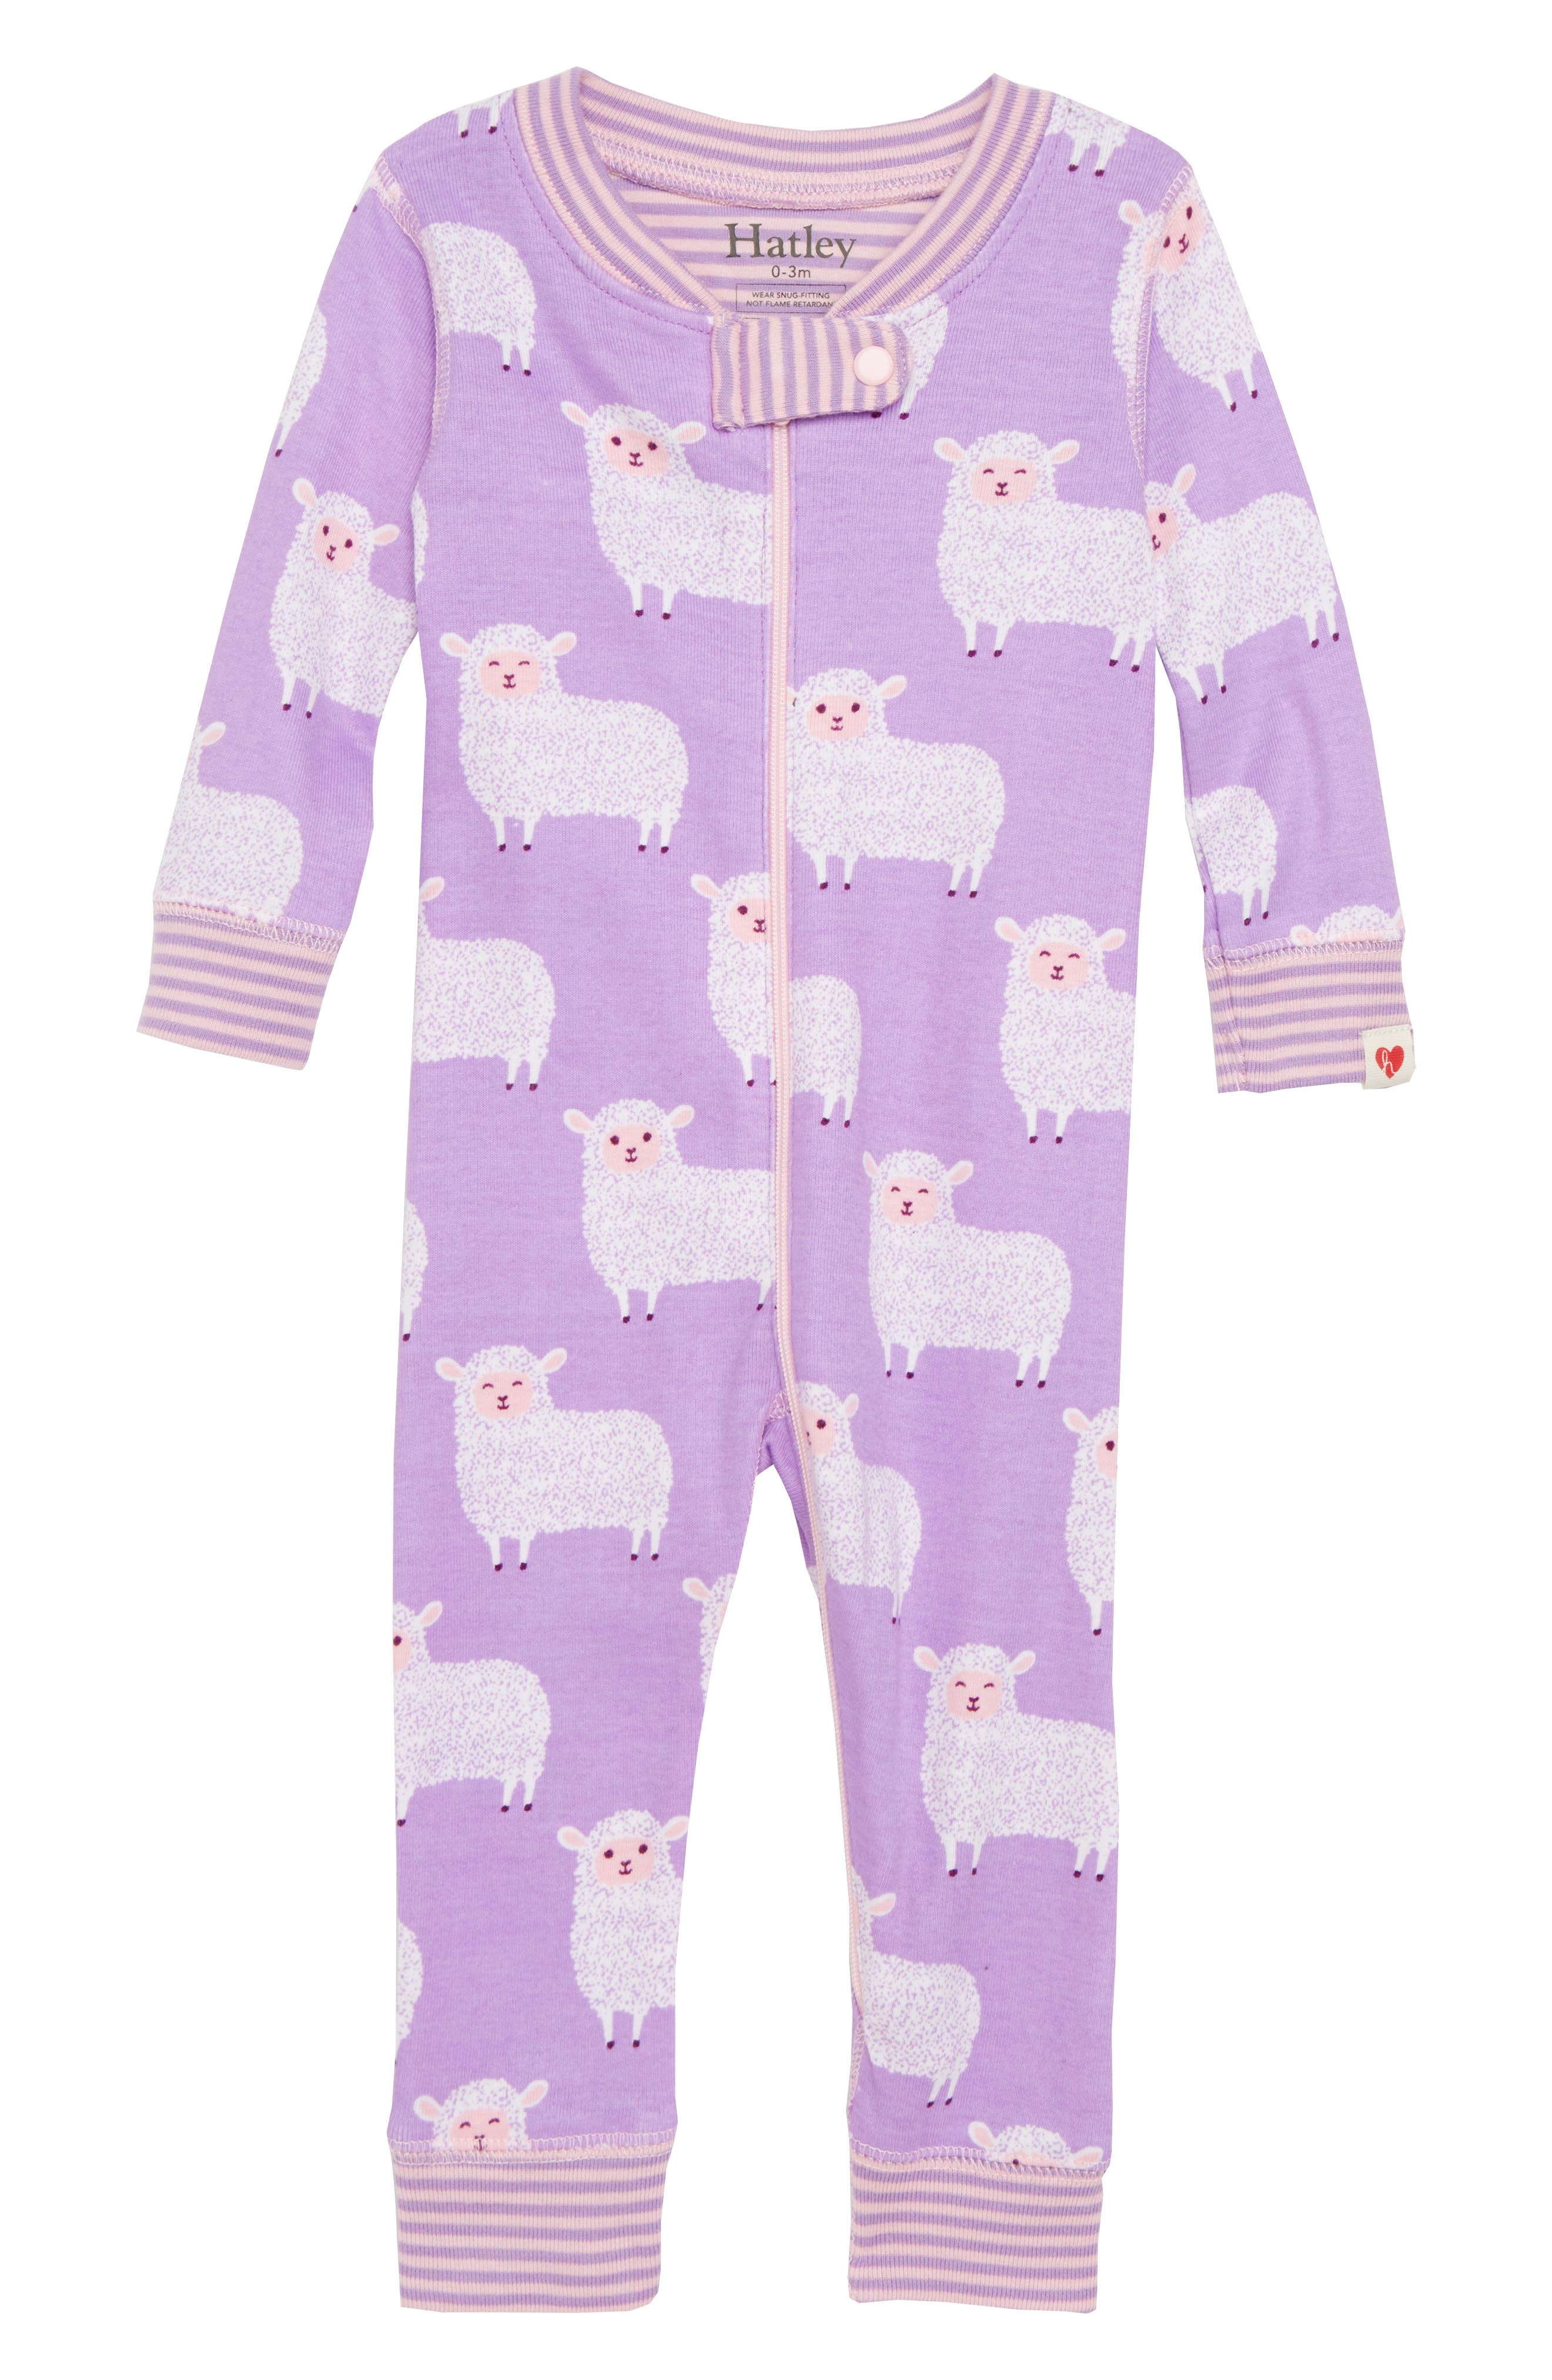 Counting Sheep Fitted One-Piece Pajamas,                             Main thumbnail 1, color,                             Counting Sheep